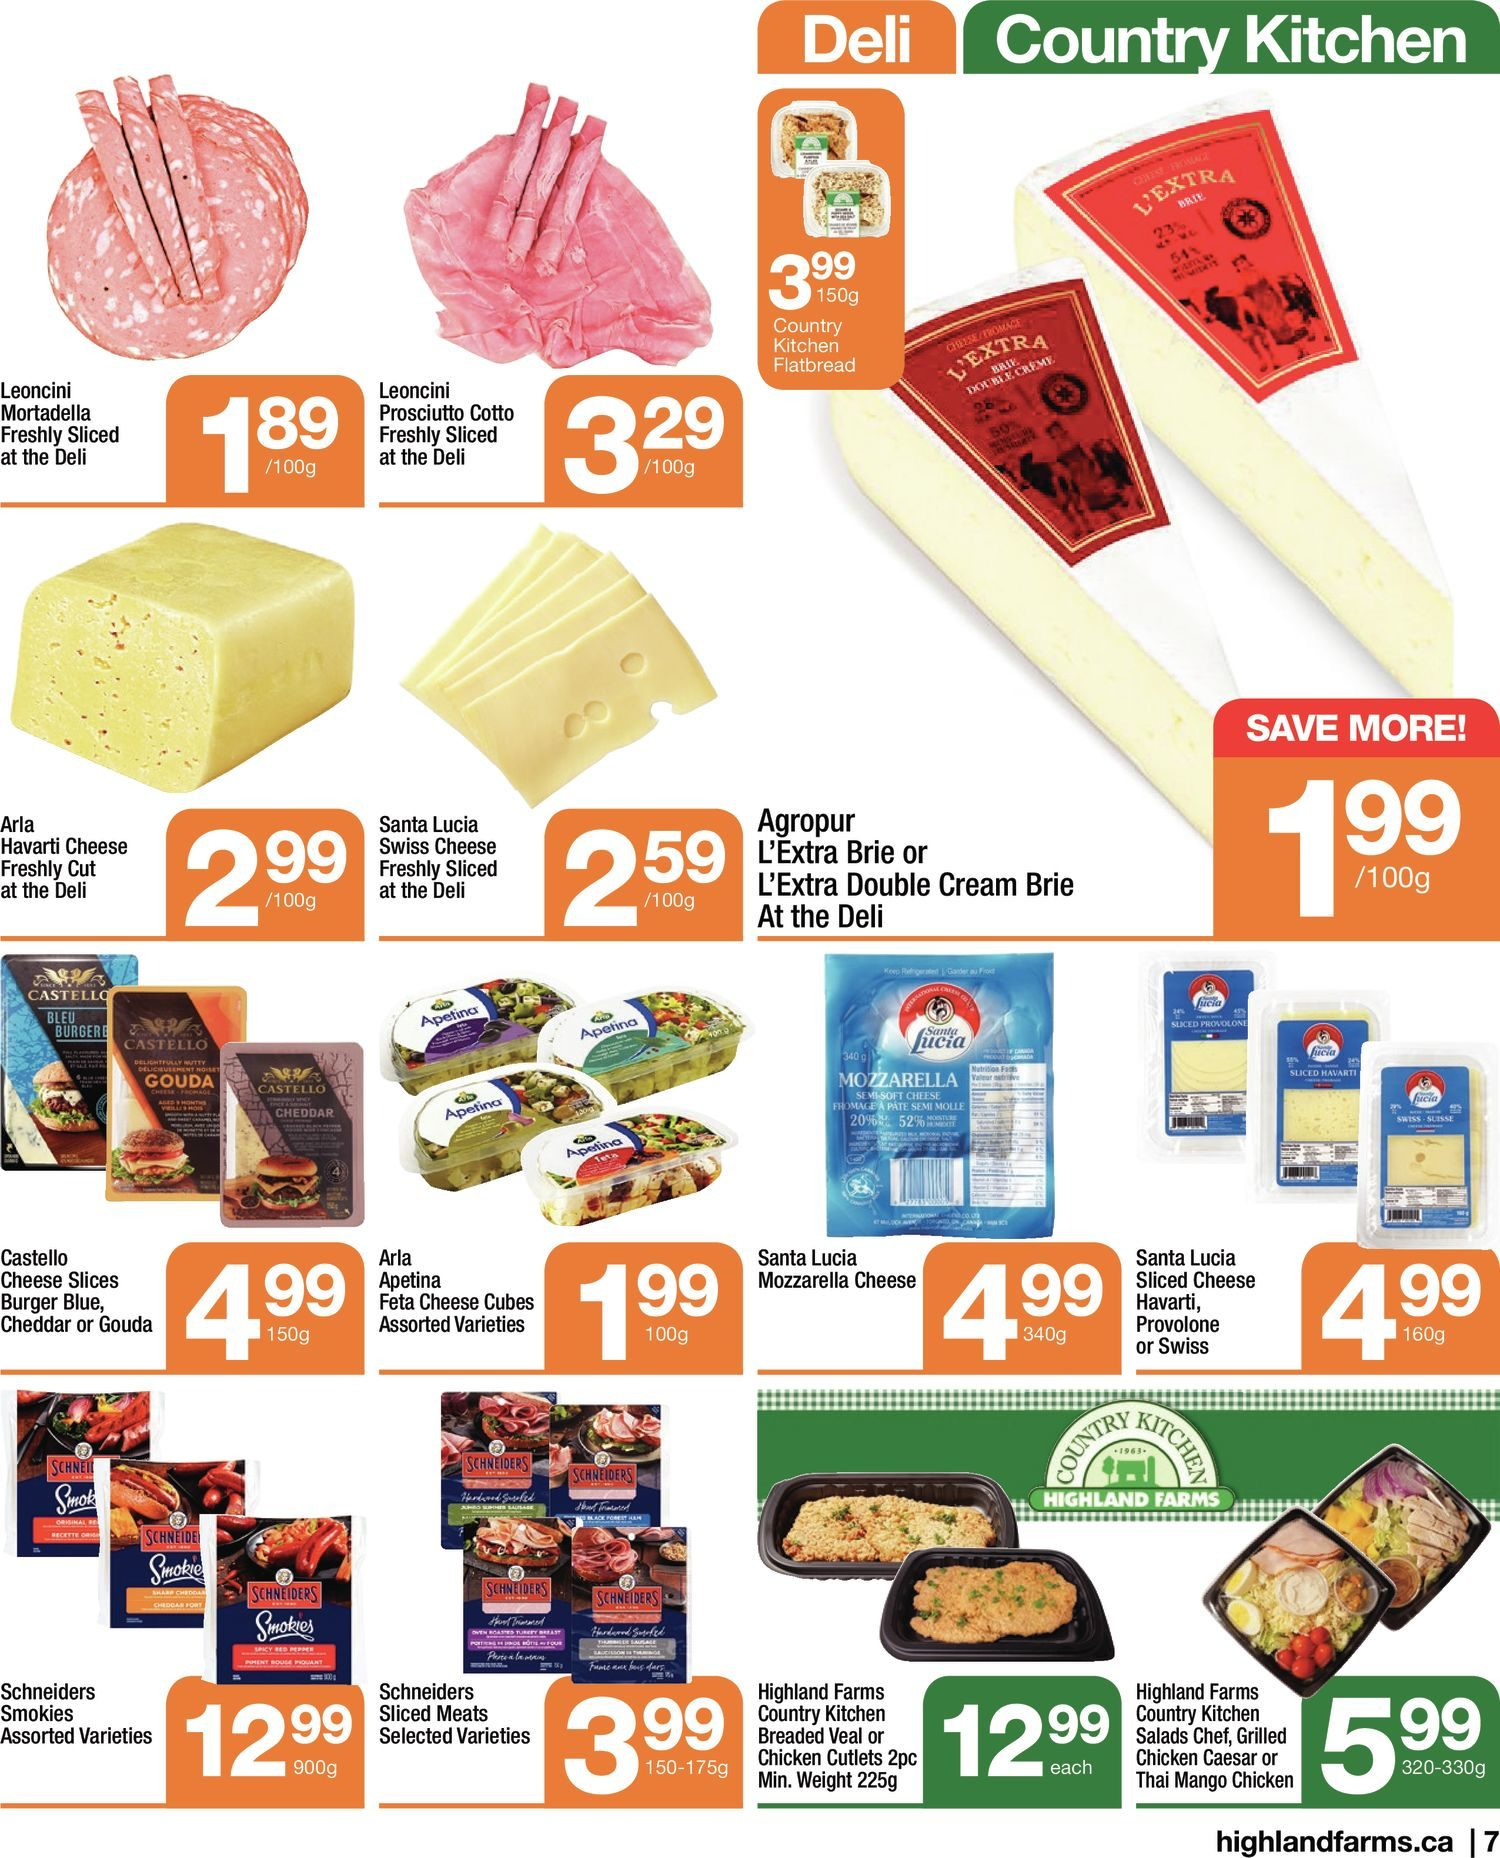 Highland Farms - Weekly Flyer Specials - Page 7